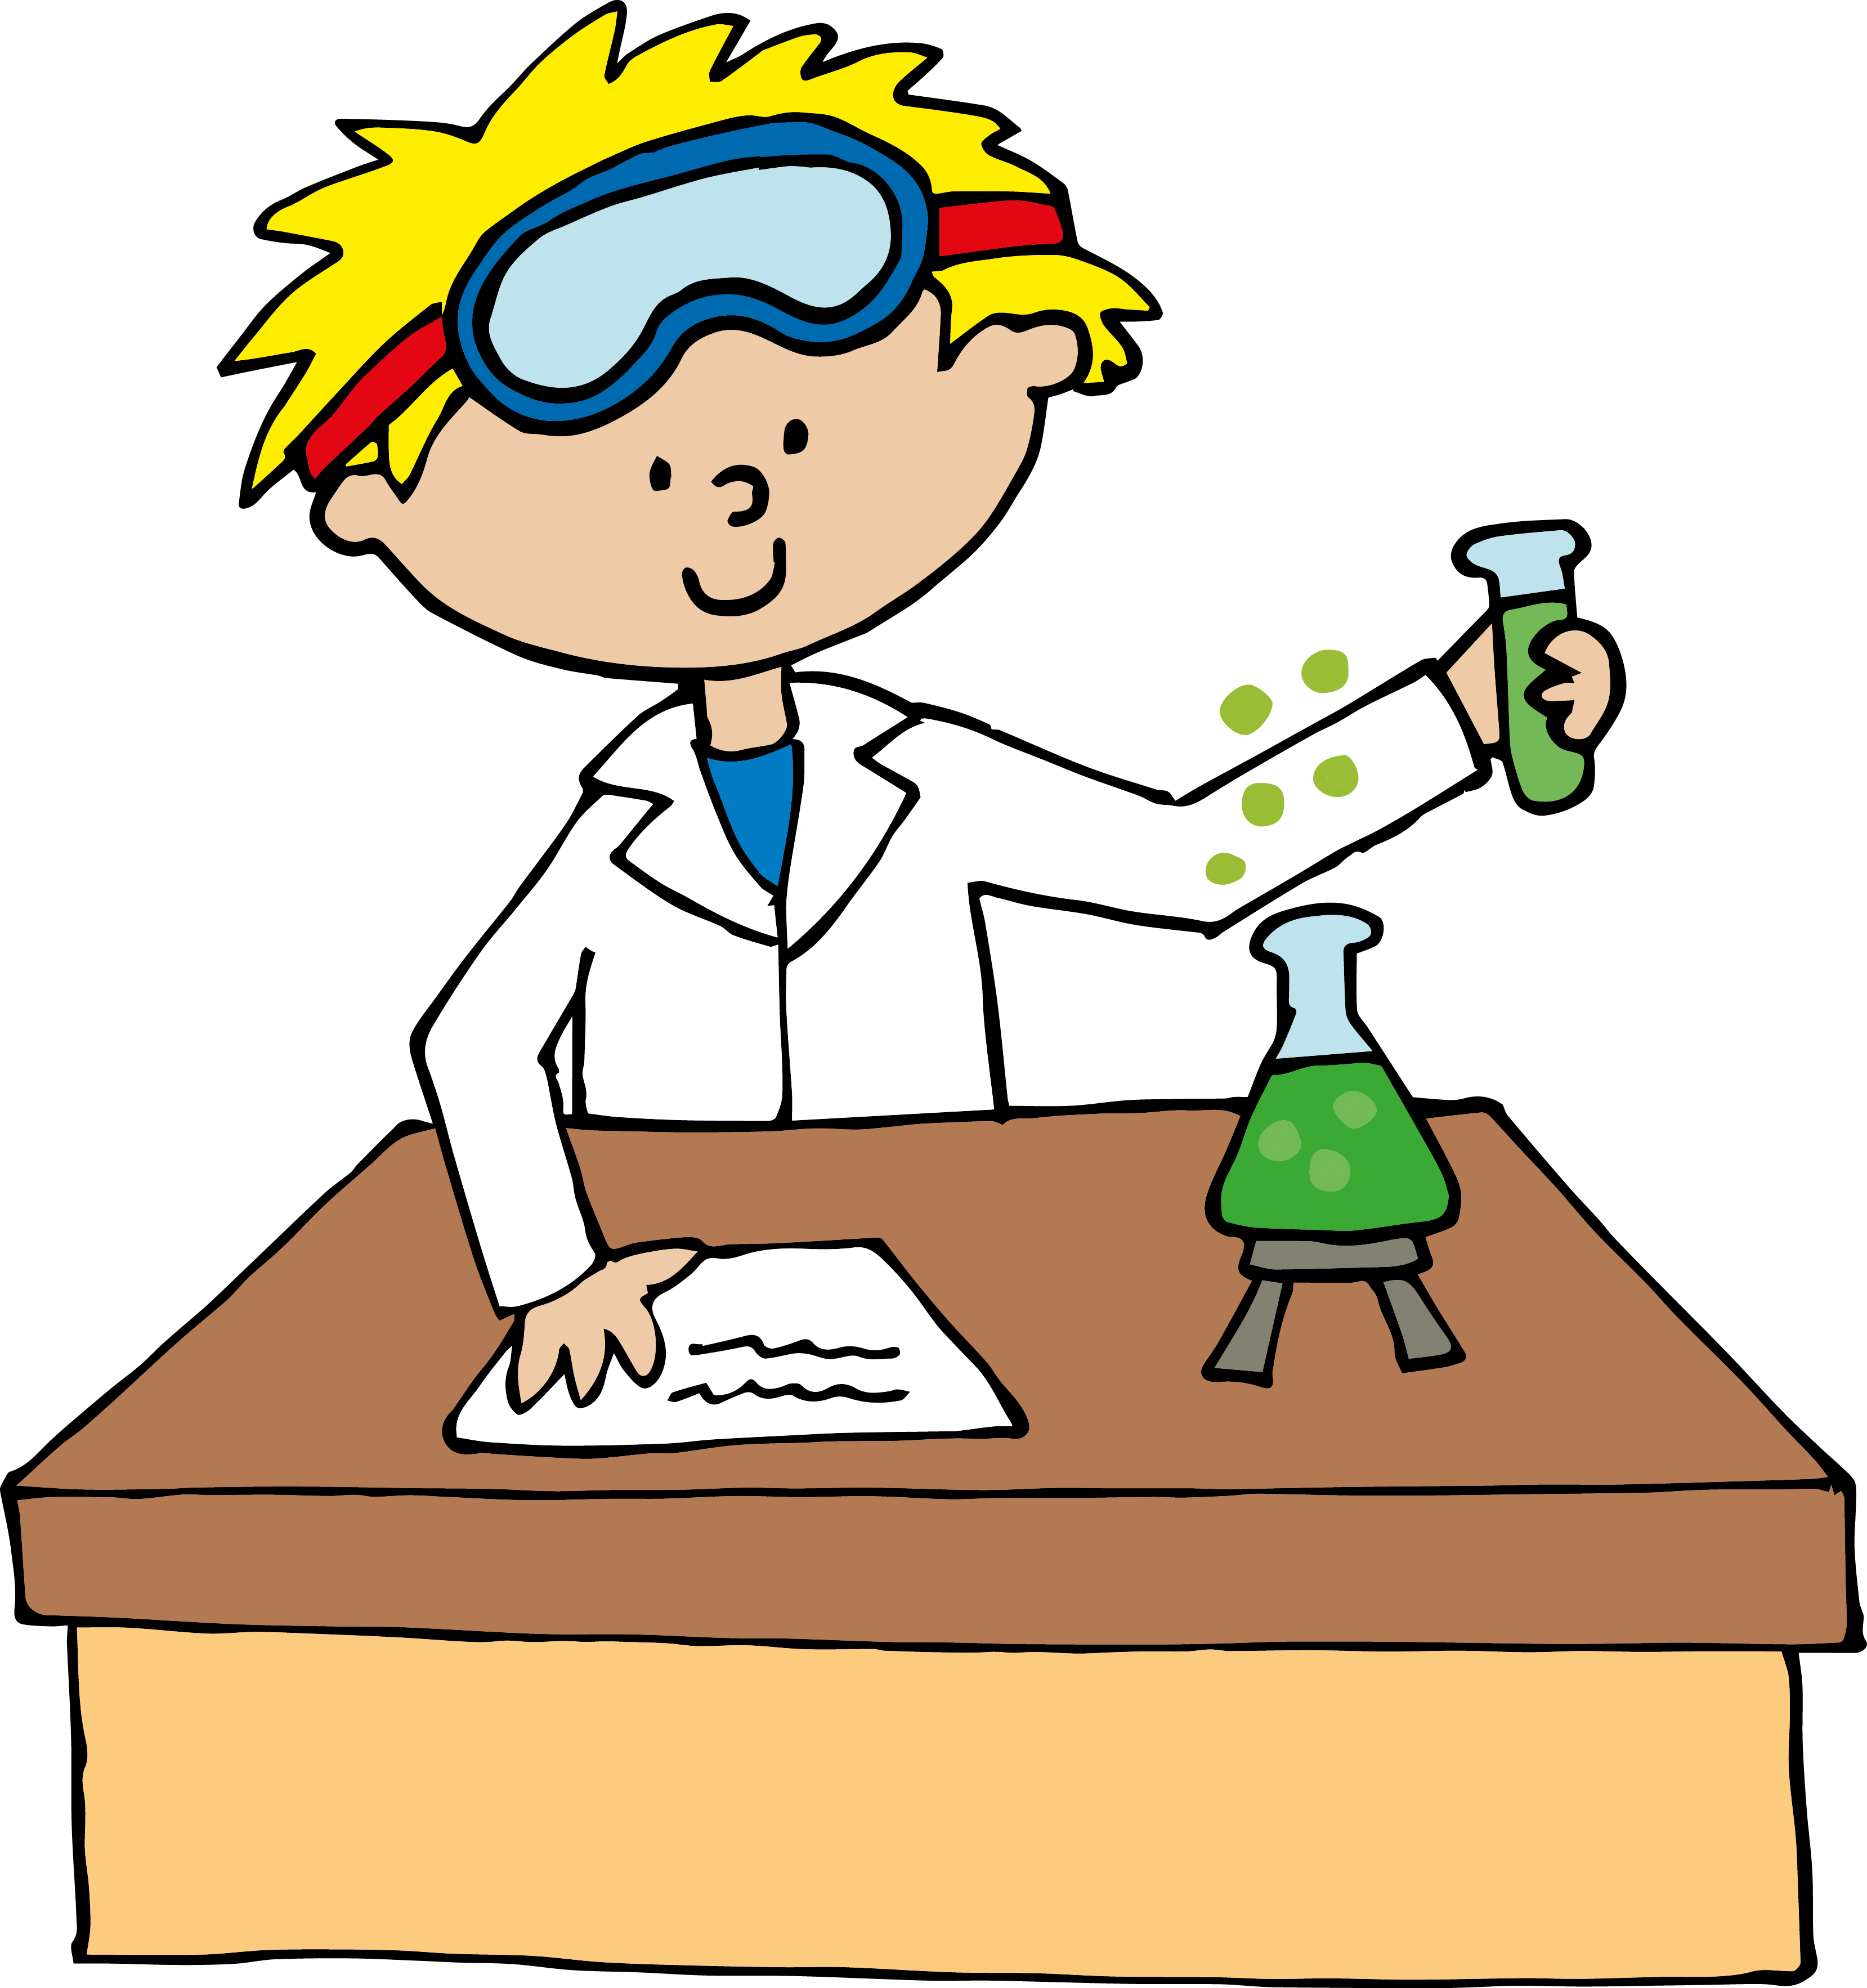 Elegant of experiment letters. Journal clipart science journal